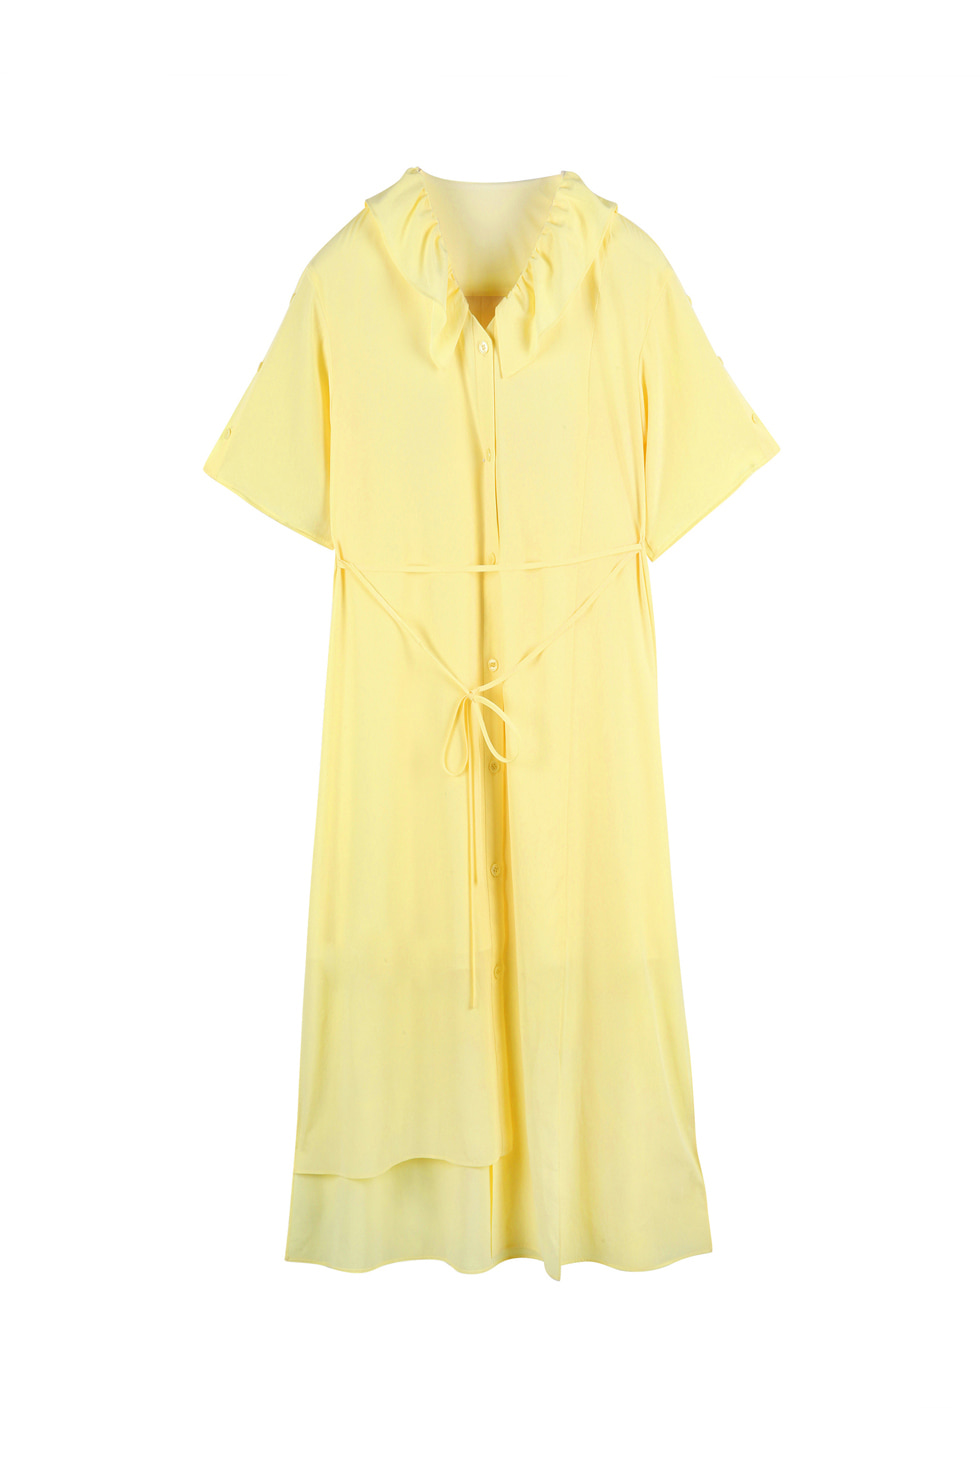 RUFFLE COLLAR DRESS - YELLOW